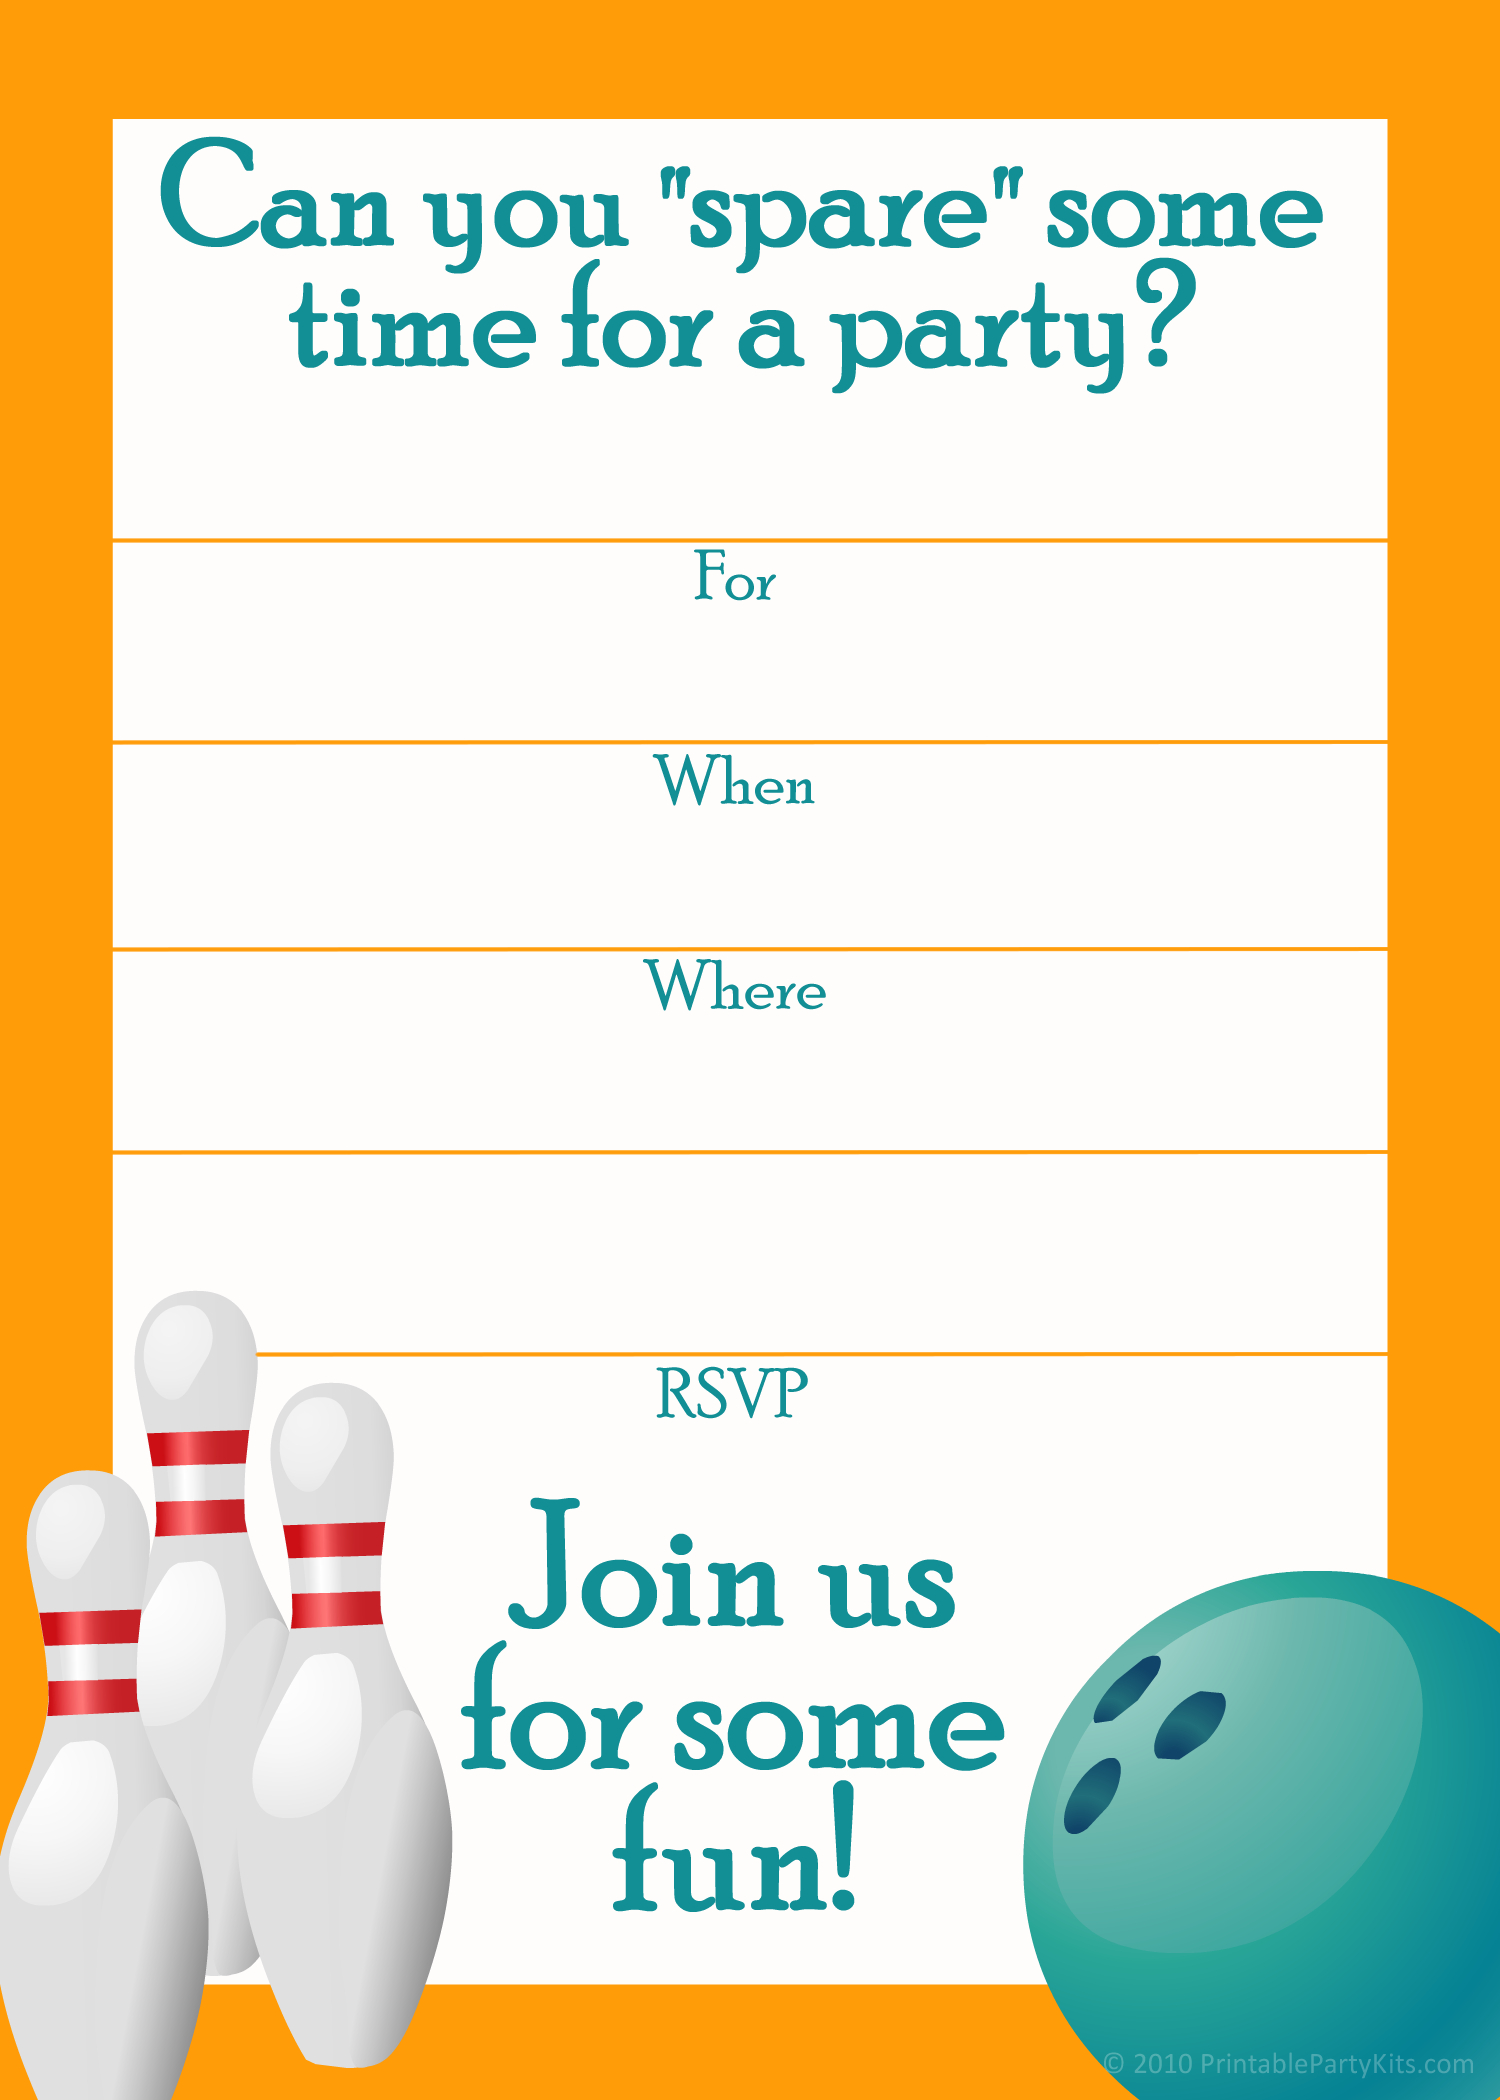 Free Printable Sports Birthday Party Invitations Templates | Party - Free Printable Bowling Ball Template